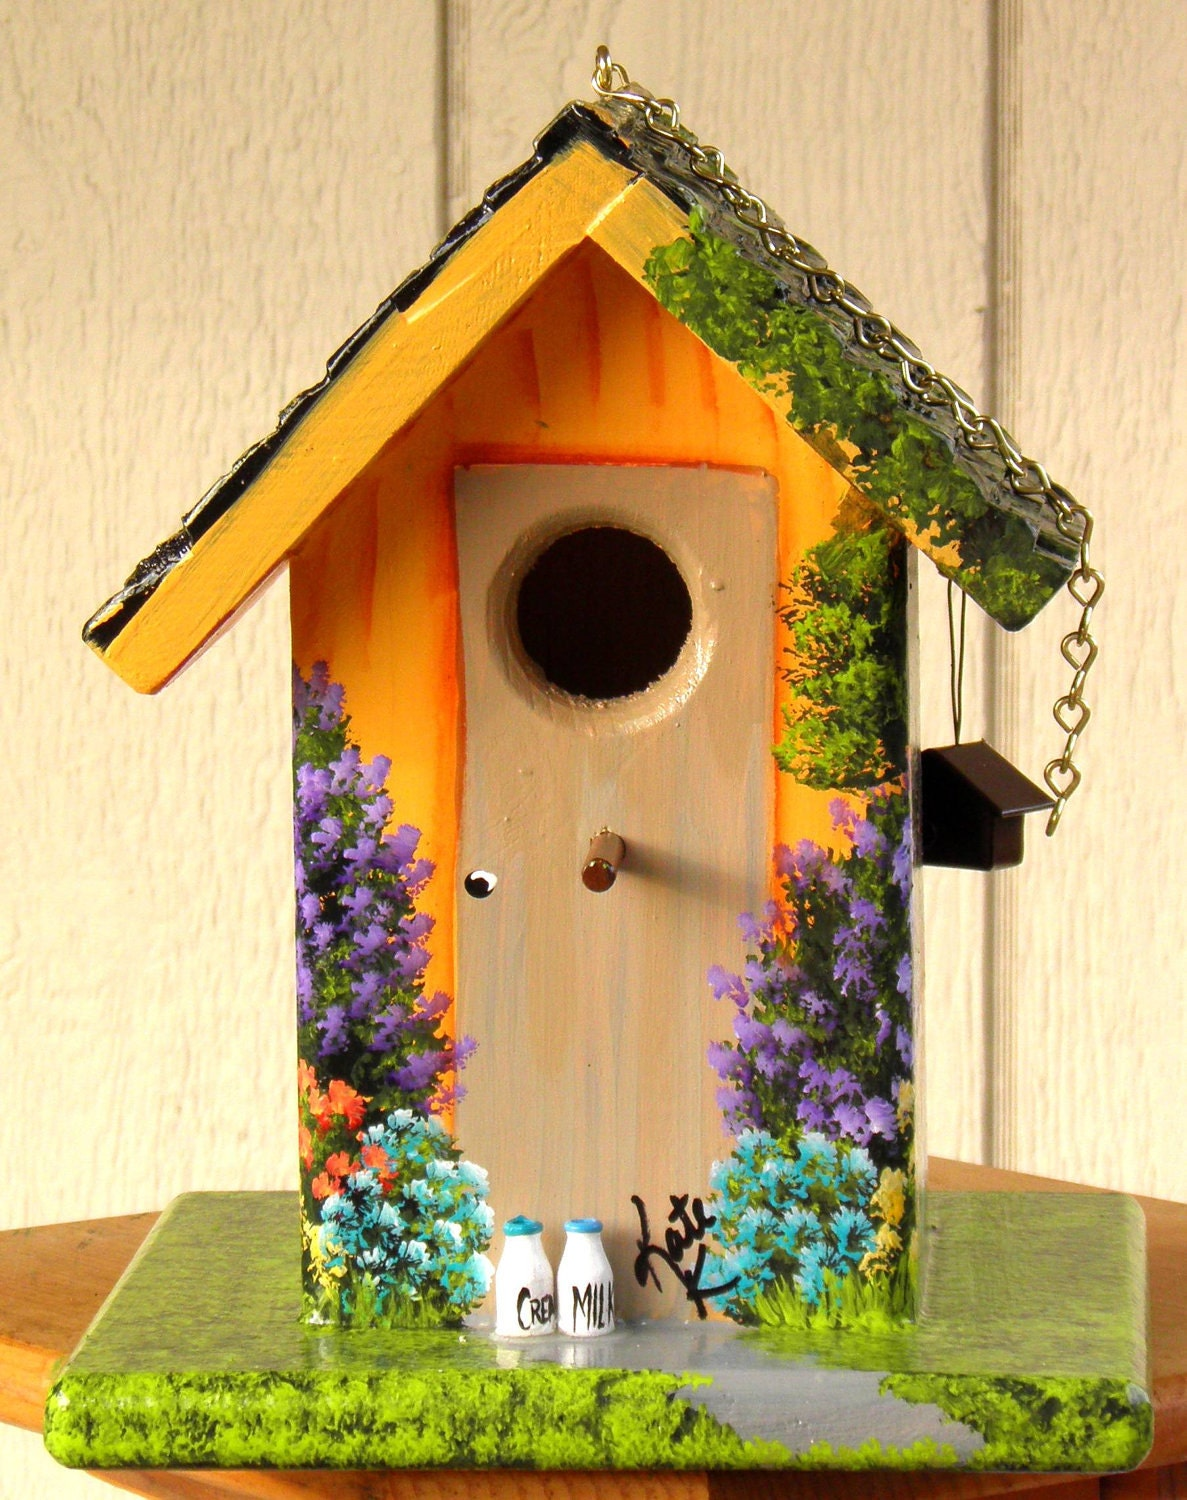 hand painted bird house orange with colorful flowers